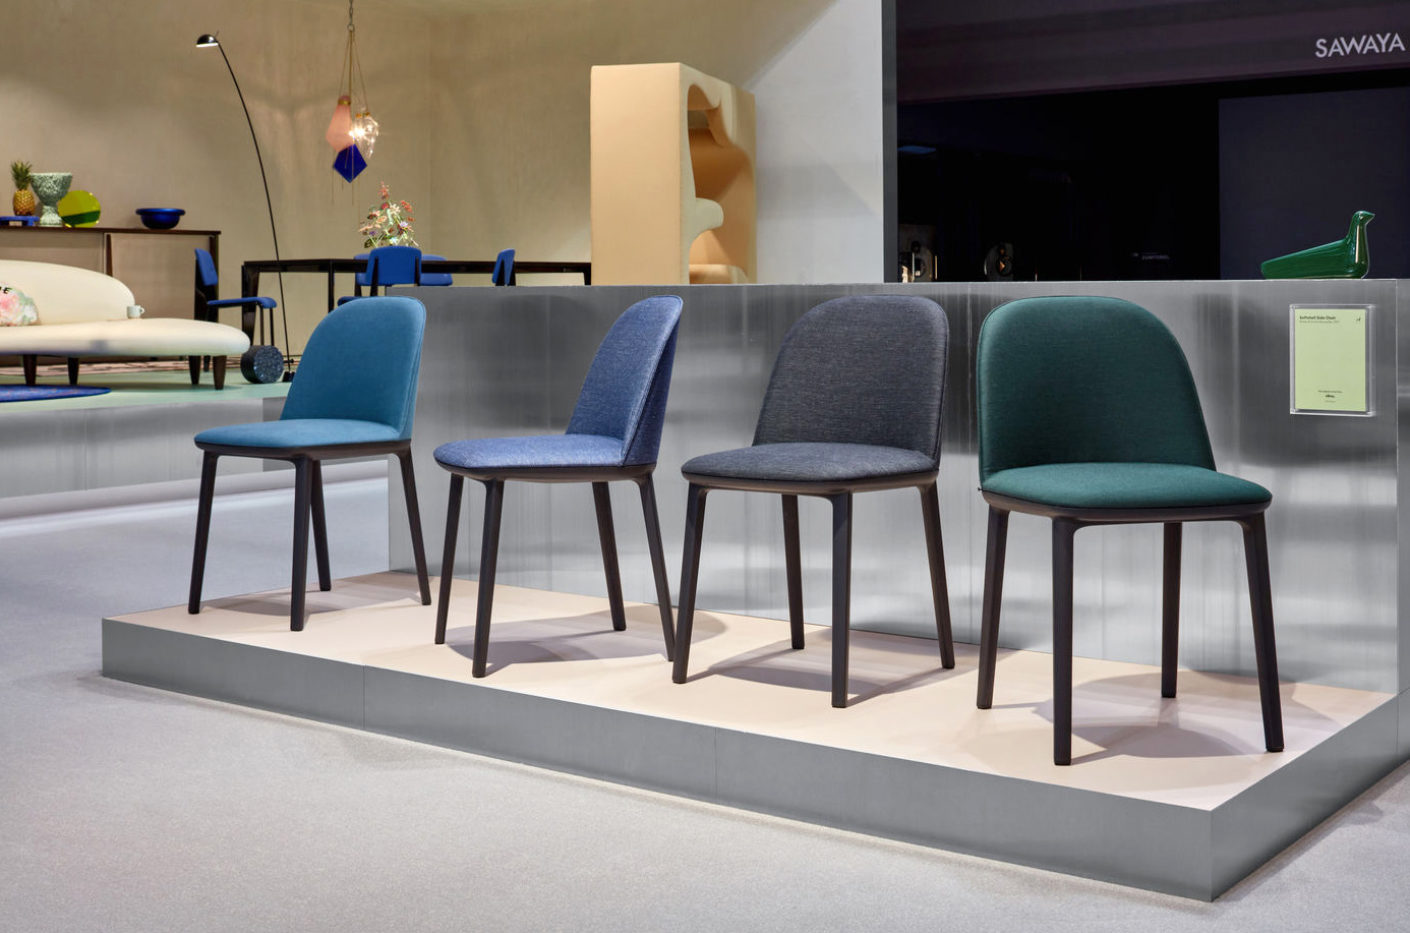 """The successor to the """"Softshell chairs"""" of the brothers Bouroullec offers flexible, vertically arranged slats under the lid of the backrest for a comfortable sitting."""